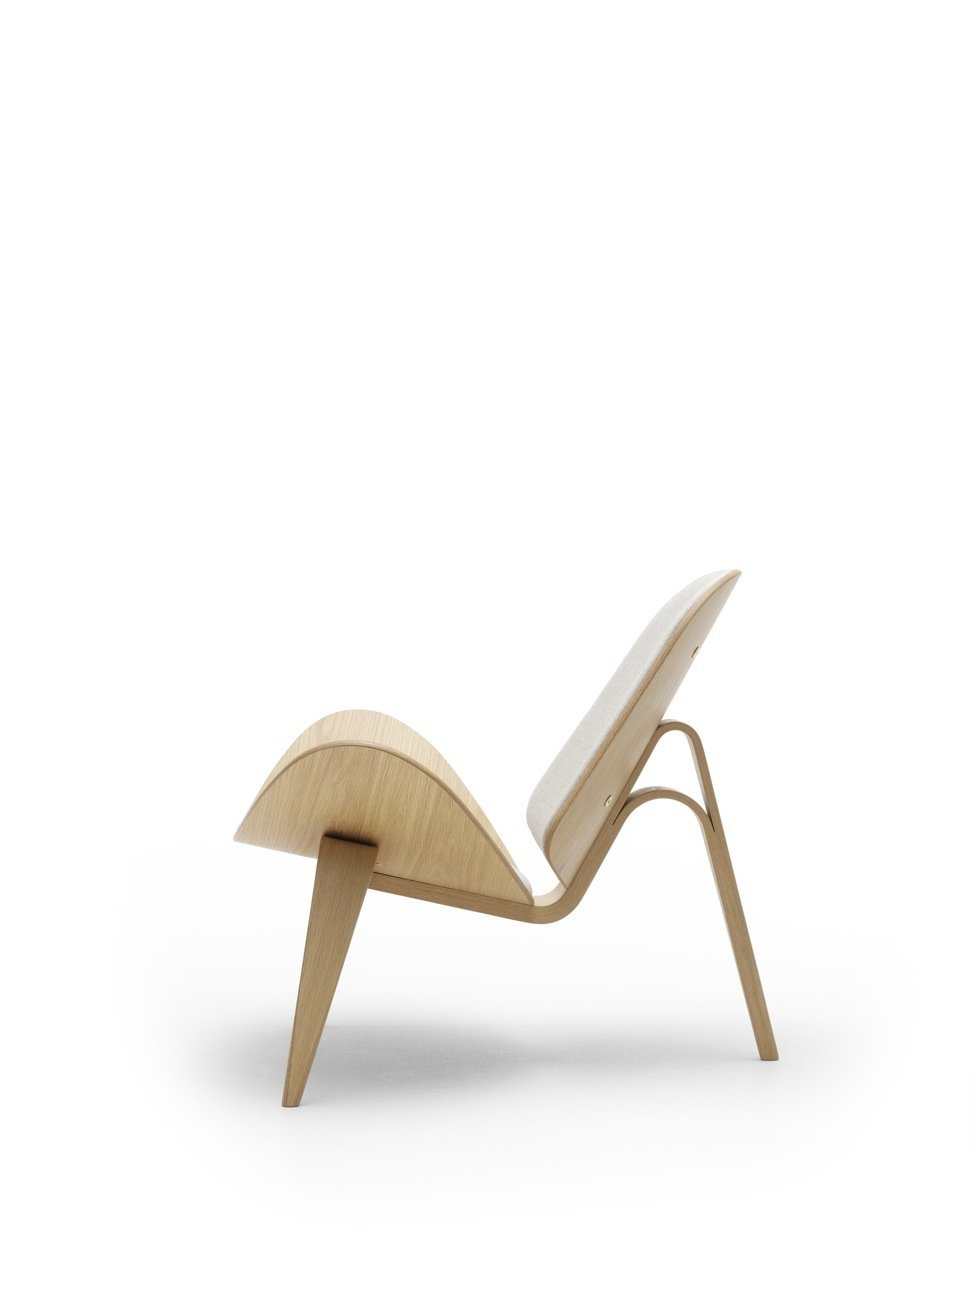 The public was initially reluctant to accept the Three-Legged Shell Chair (1963), an edgier piece of work, from Wegner, which debuted at the 1963  Furniture Guild Exhibition in Copenhagen, but has become more attracted to the wavy, airy design since the chair was reintroduced in 1998. Photo courtesy of Carl Hansen & Son.  Photo 6 of 9 in 8 Iconic Chairs by Hans Wegner